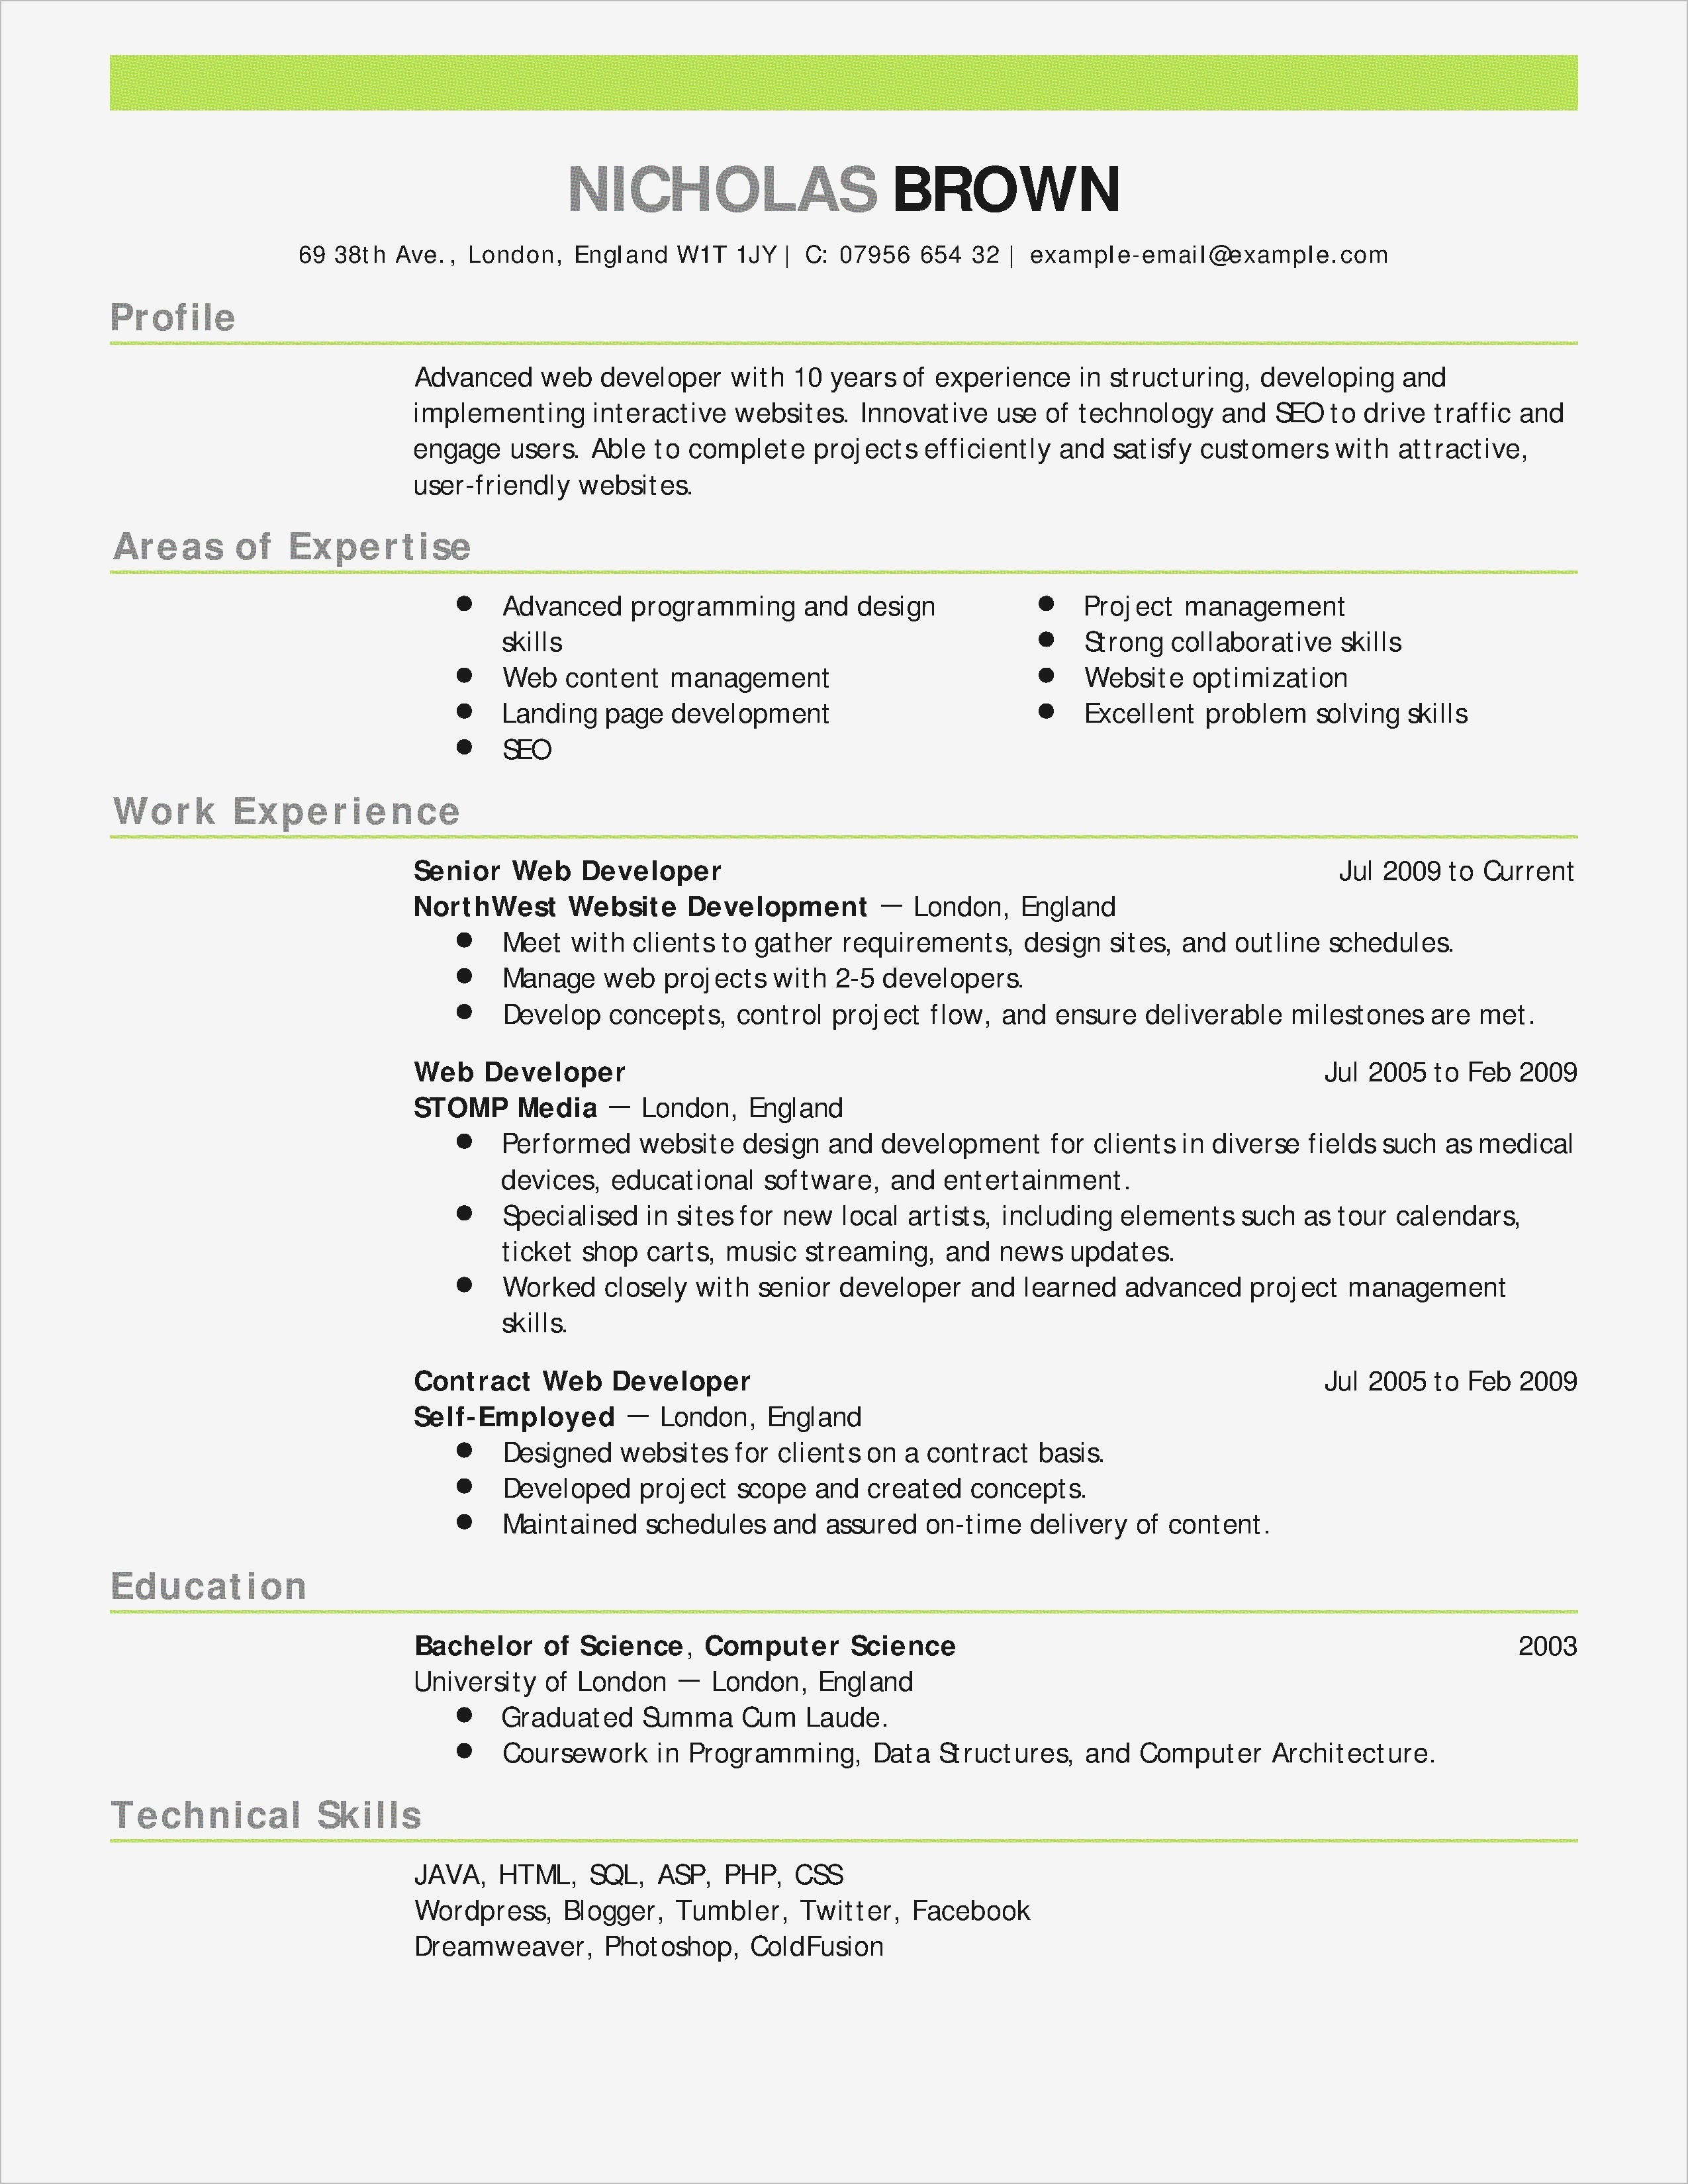 resume leadership skills Collection-Leadership Skills Resume Awesome Awesome Examples Resumes Ecologist Resume 0d Skills Examples for Leadership Skills 4-t